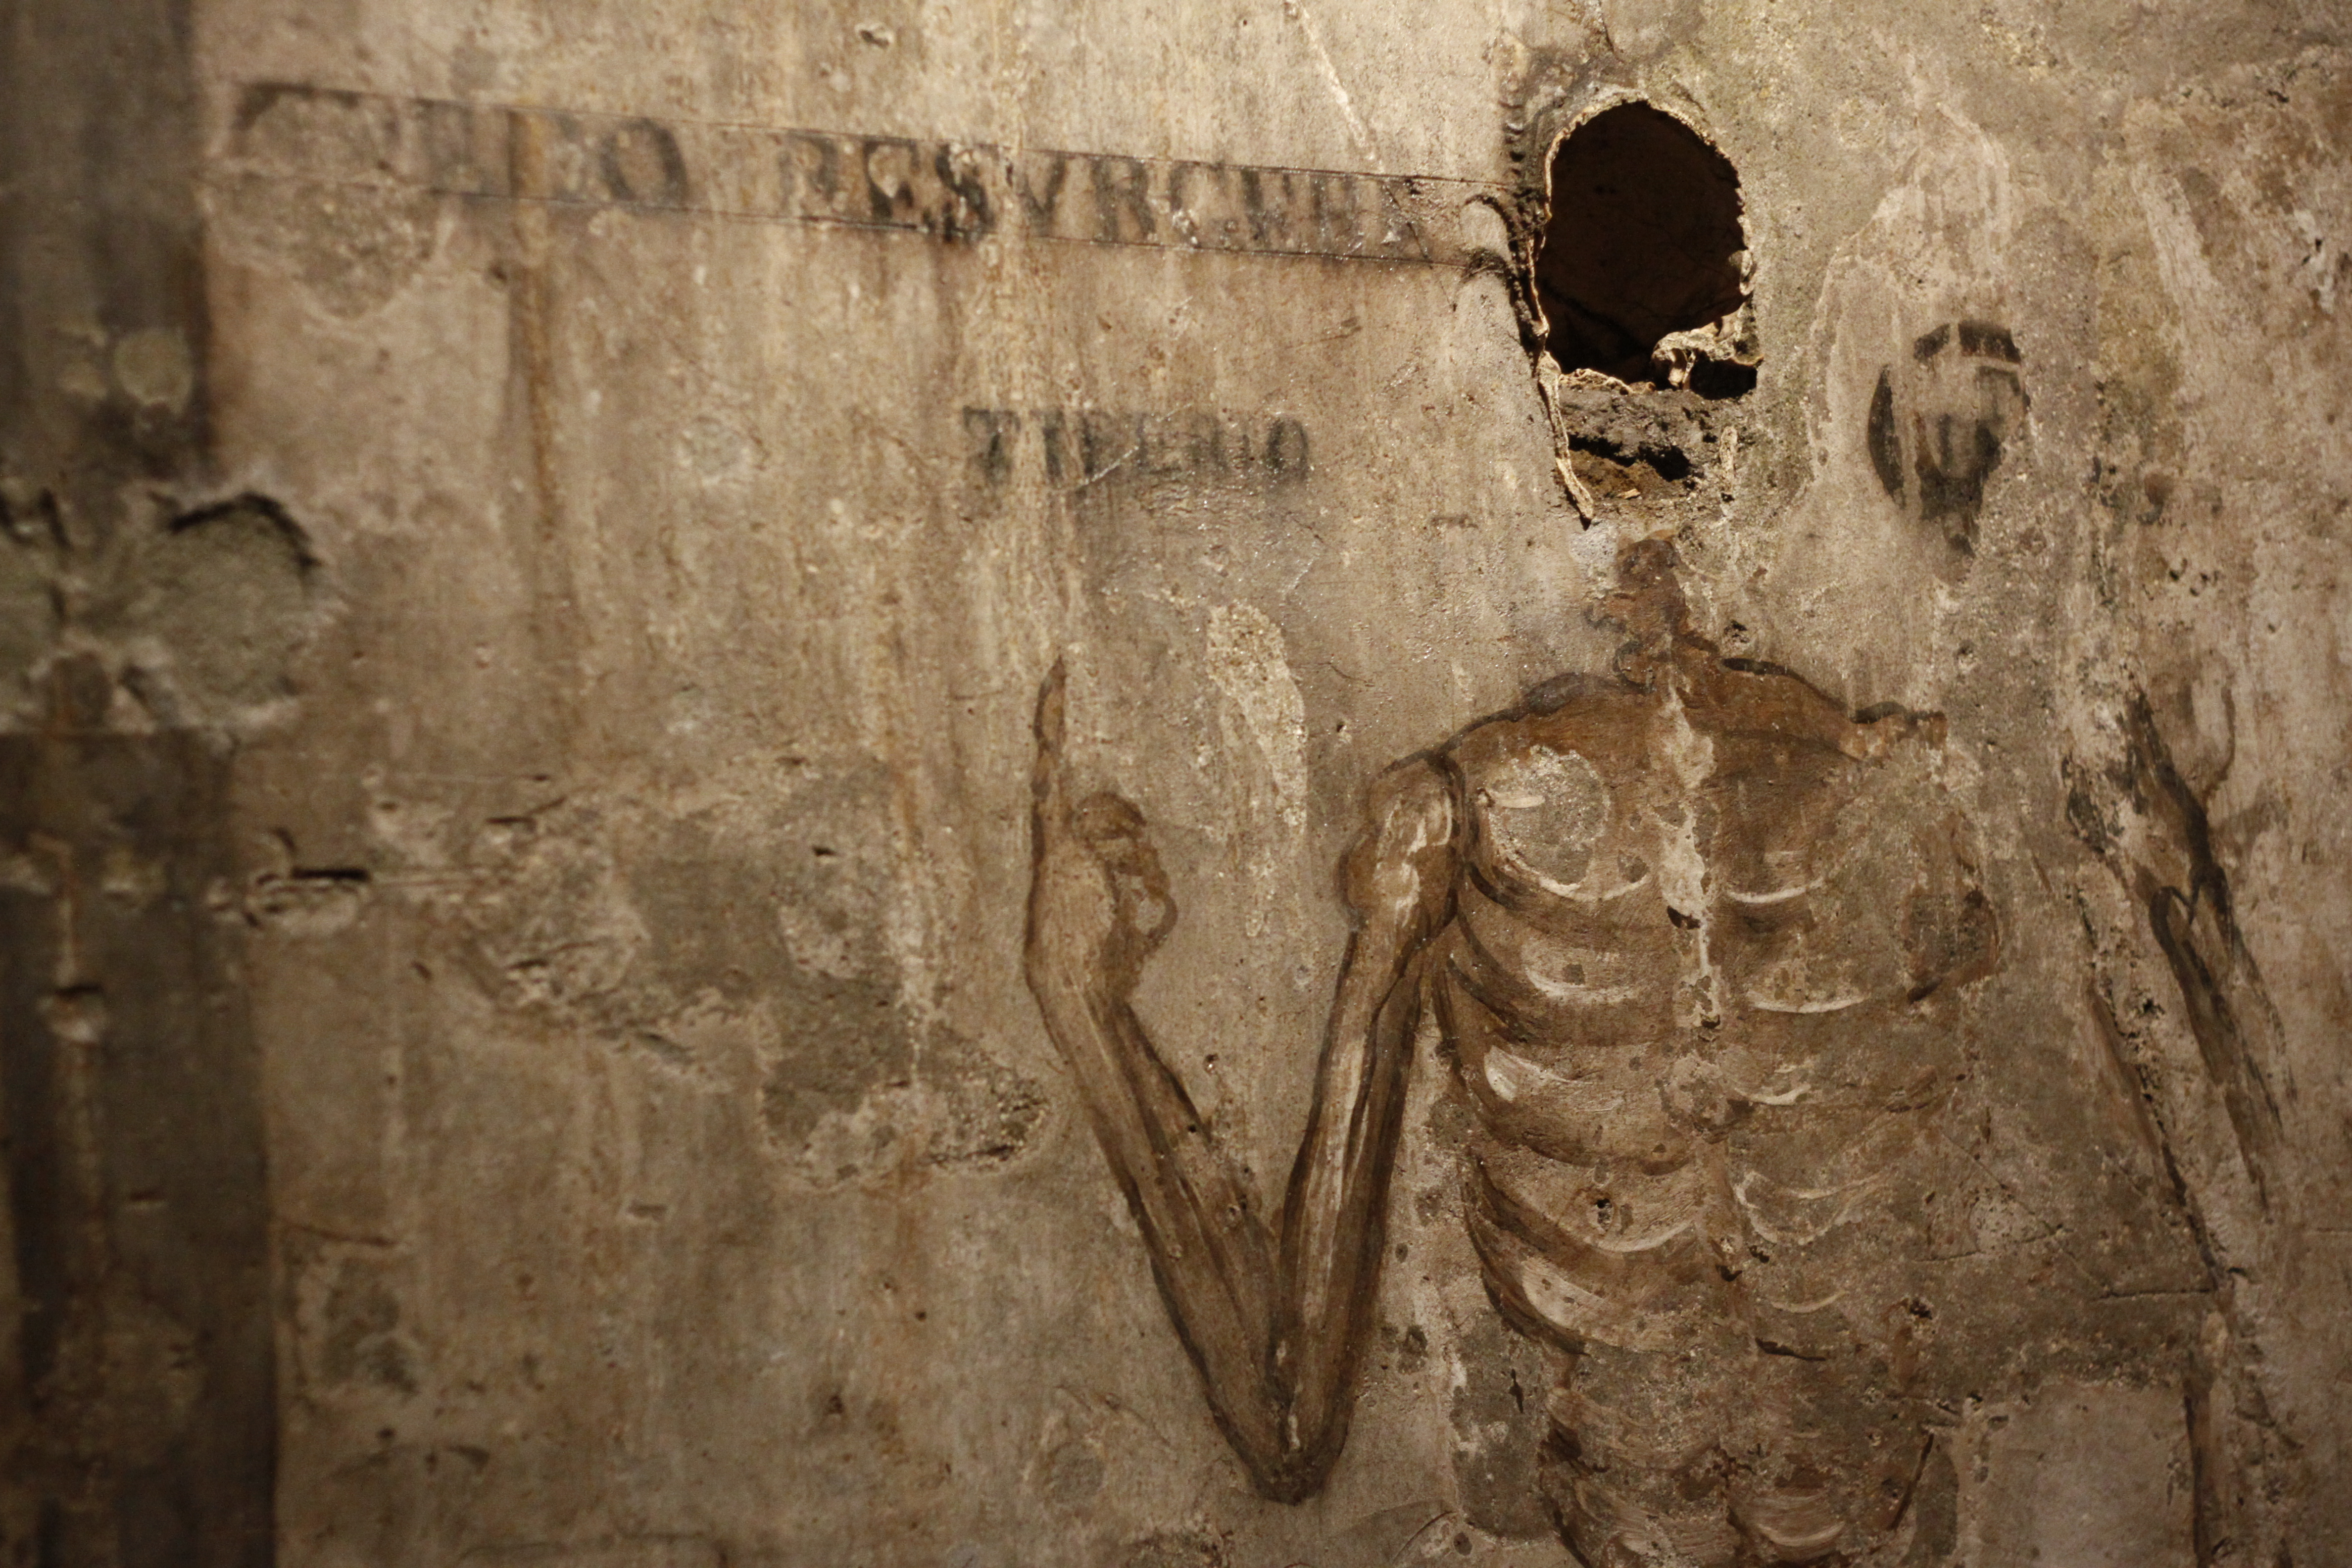 Tickets for Catacombs of San Gaudioso: Guided Visit